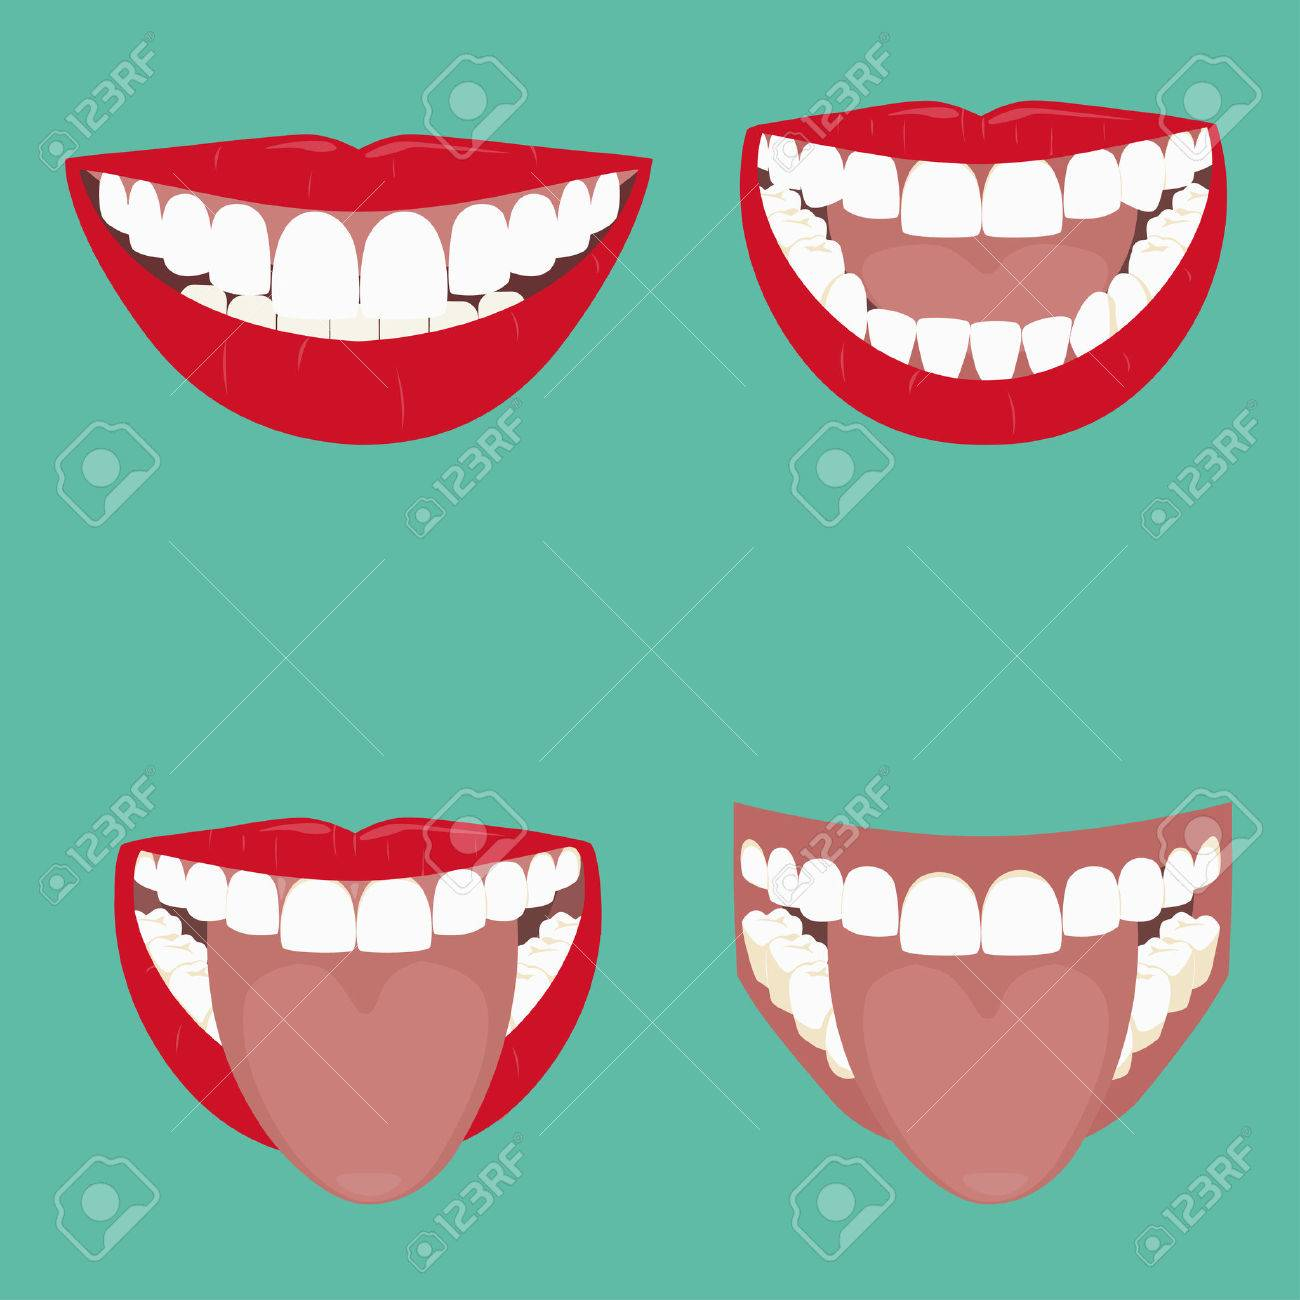 Open Mouth Vector illustration. beautiful smile with teeth - 32345045